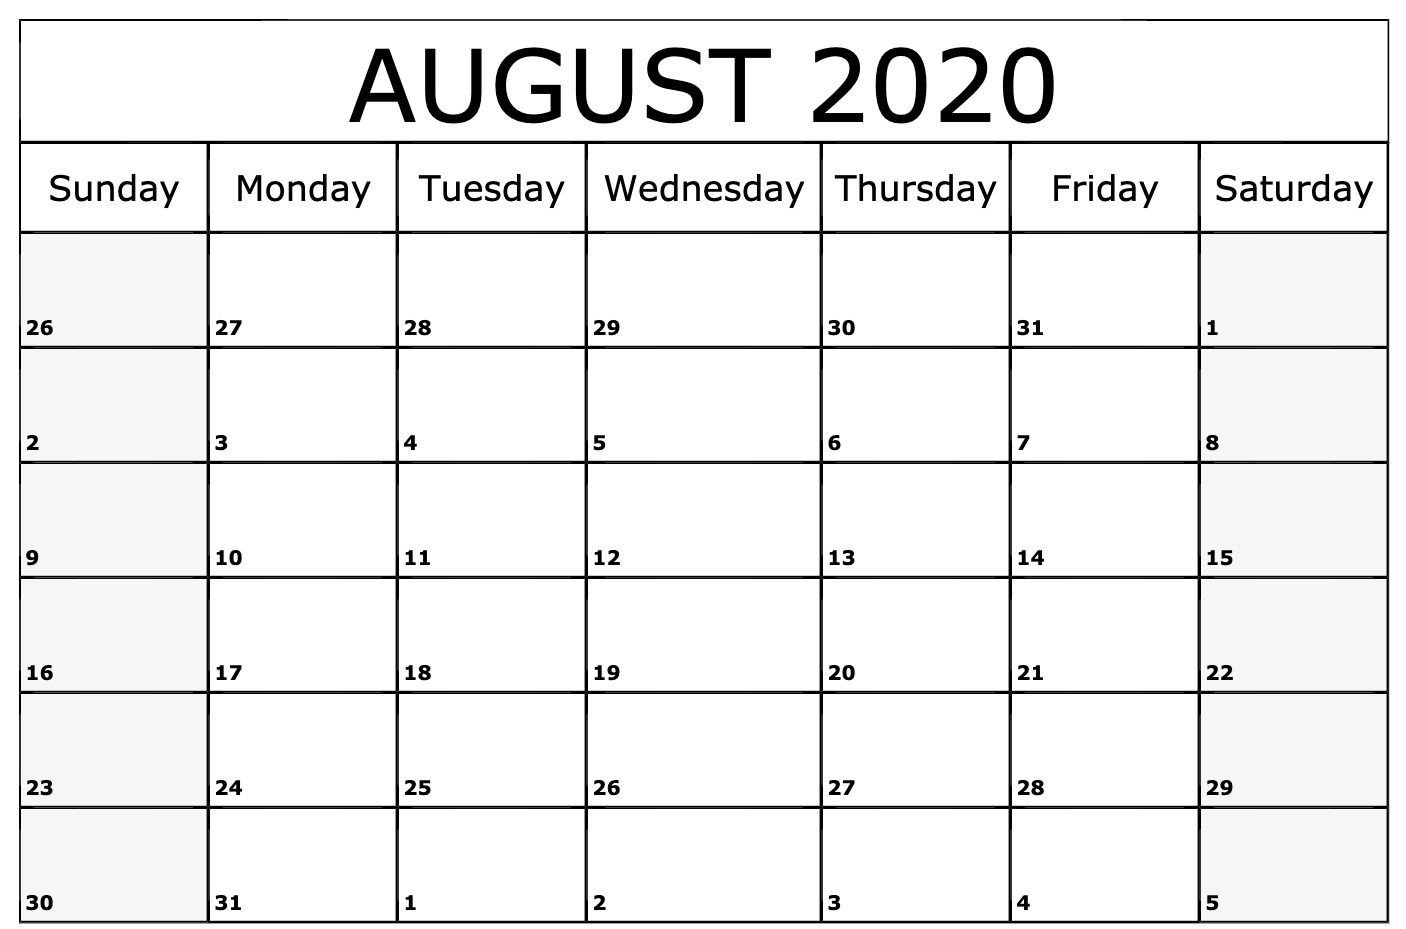 August 2020 Calendar Template | August Calendar, Blank-Free Printable Monthly Calendar August 2020